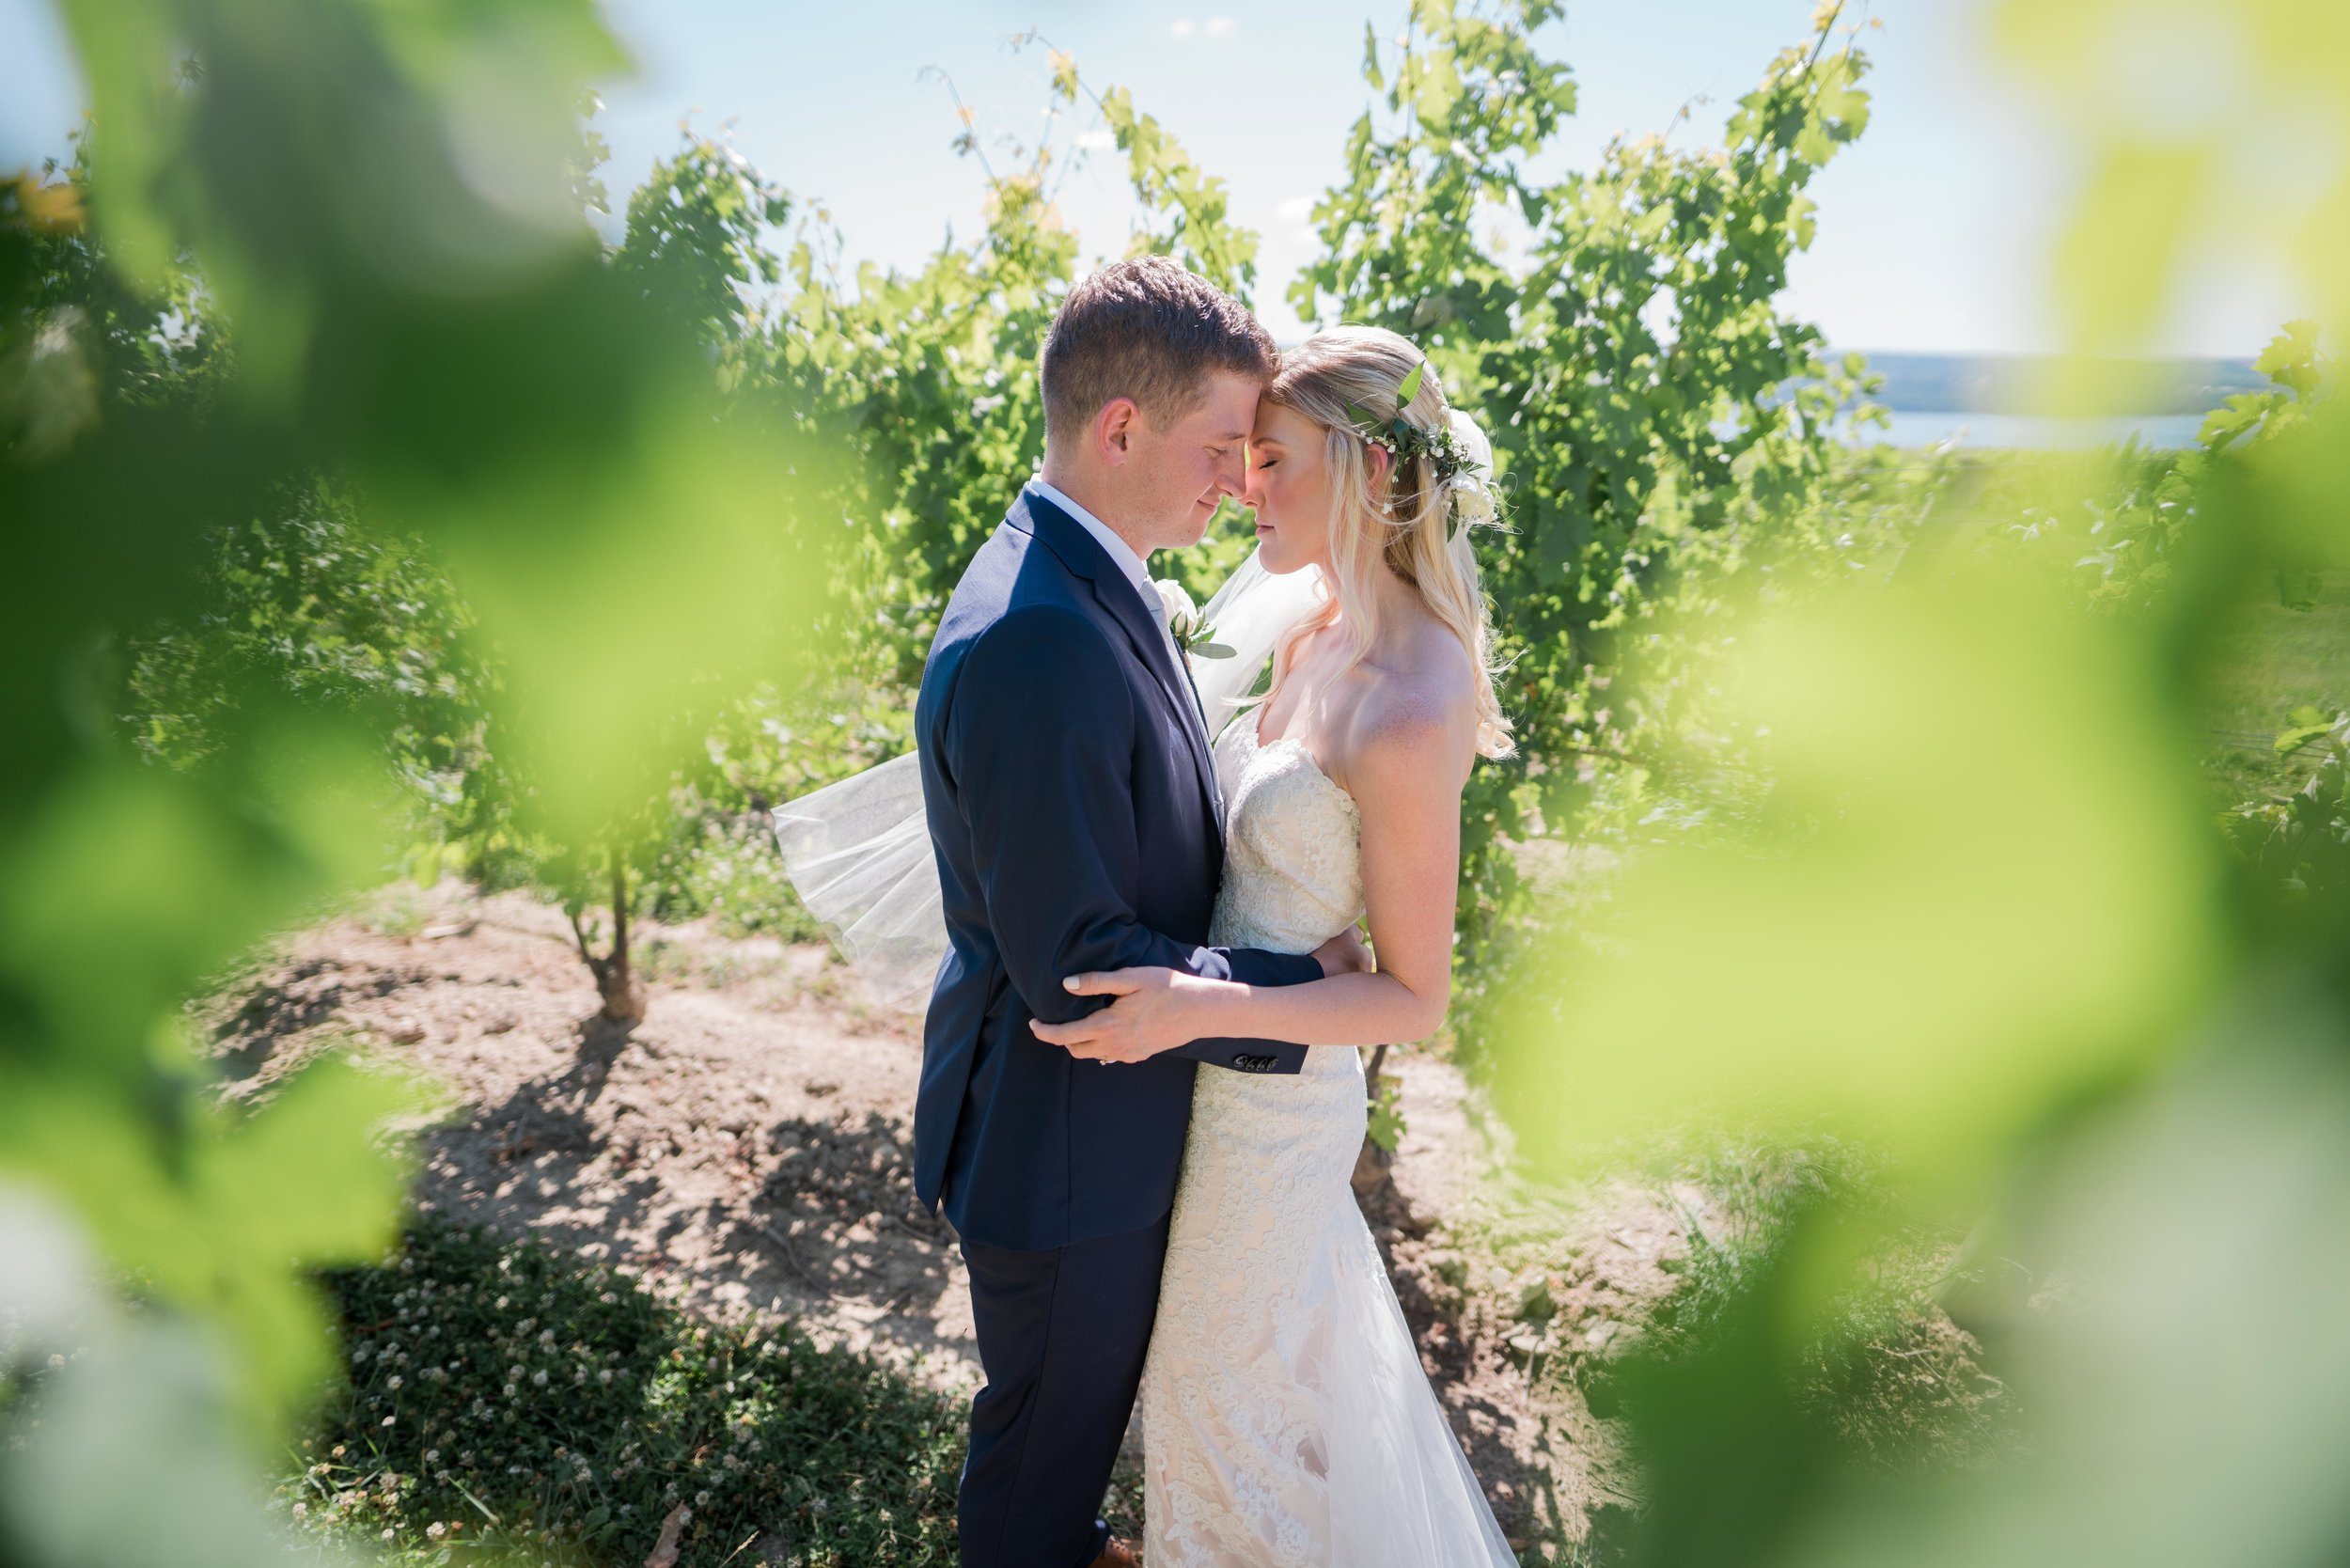 Wedding Photography at Wagner Vineyards Ginny Lee Cafe Finger Lakes by Stefan Ludwig Photography-44.jpg